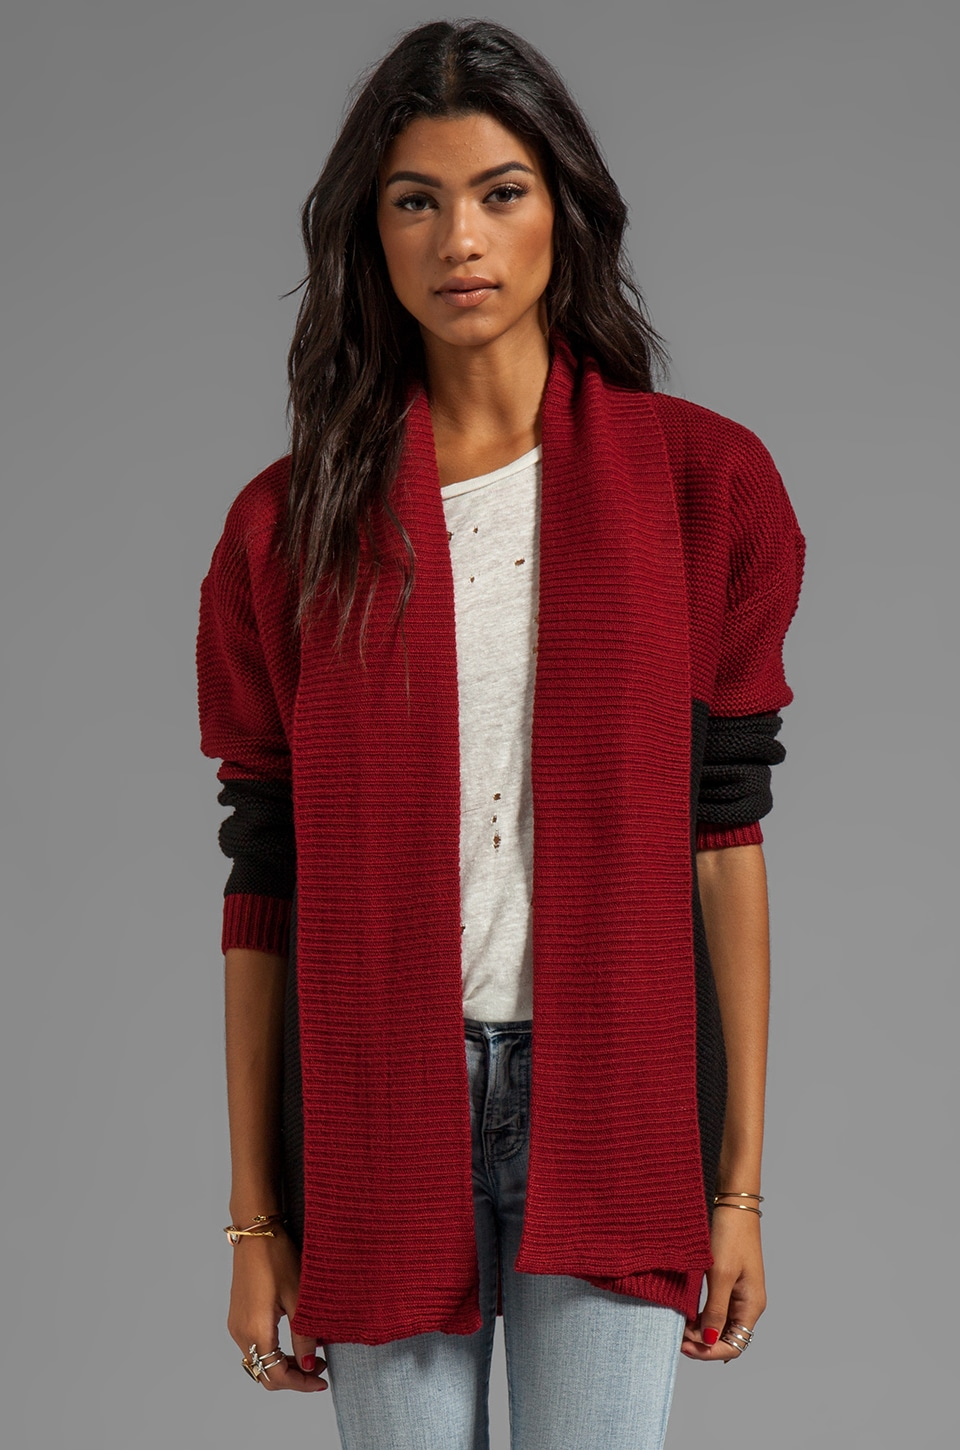 Ash-Rain-Oak London Cardigan in Oxblood/Black